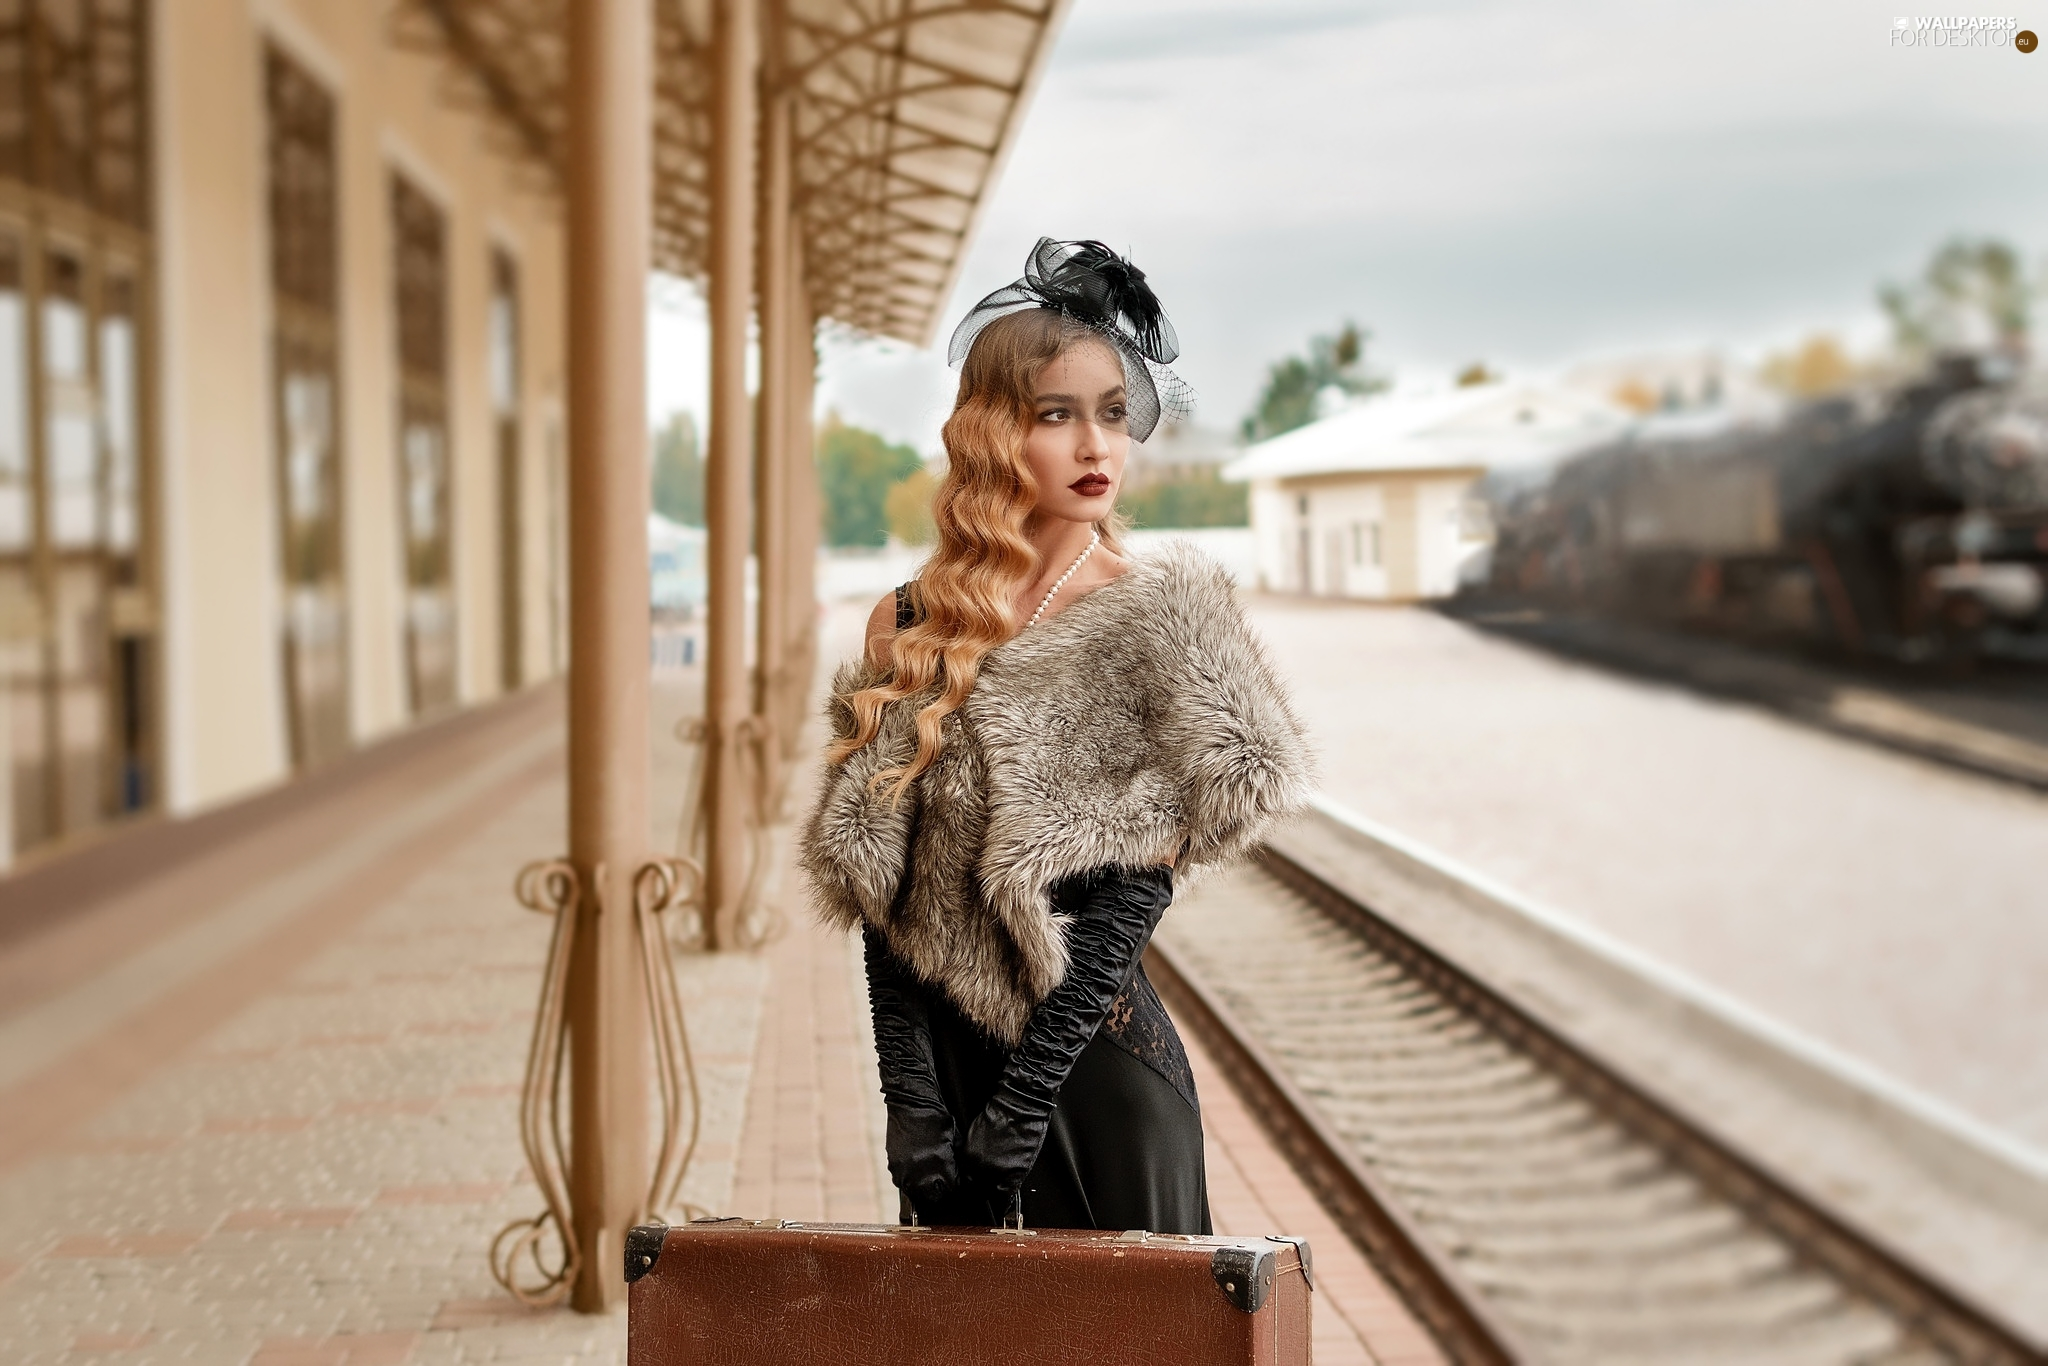 etola, Blonde, platform, veiling, Women, case, station